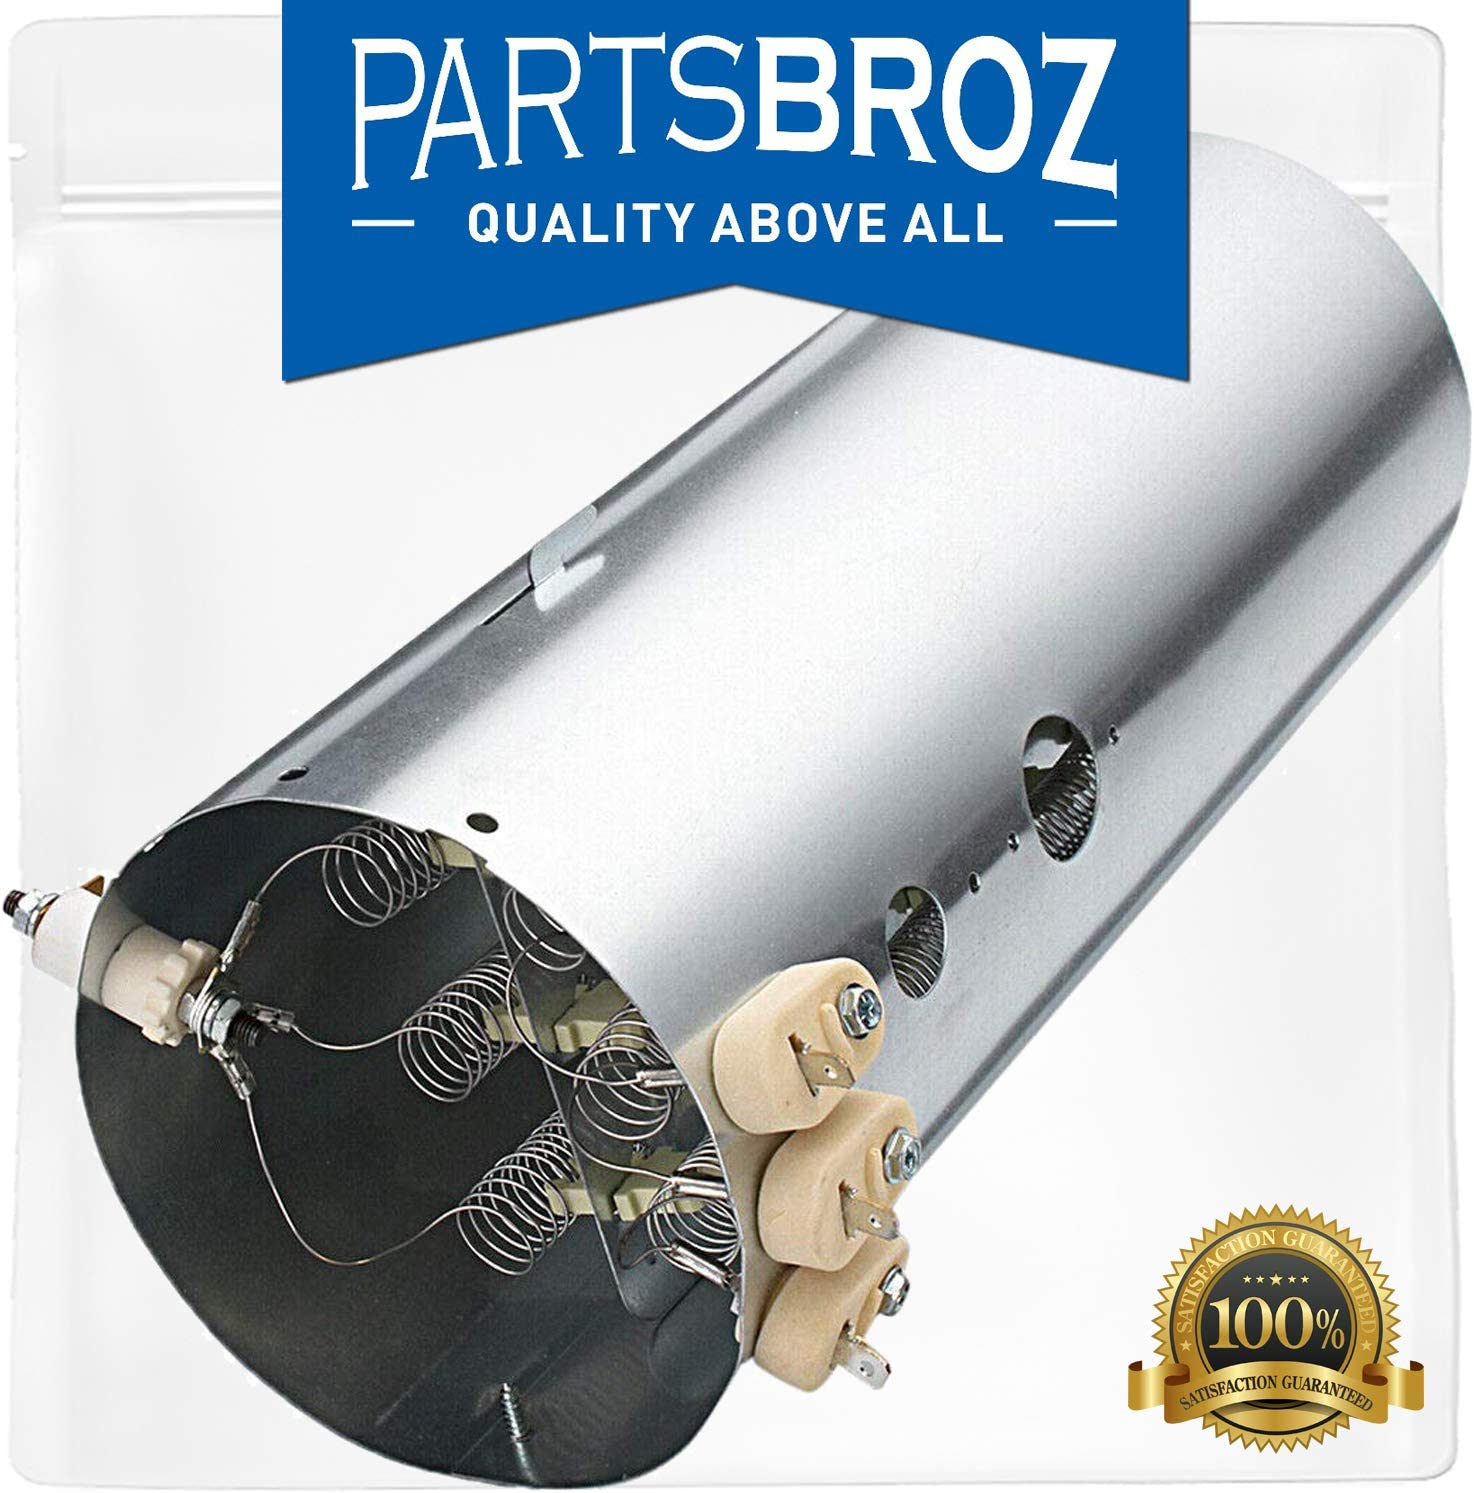 134792700 Dryer Heating Element for Electrolux & Kenmore Dryers by PartsBroz - Replaces 1482984, AH2349309, AP4456656, AP4368653, PS2349309 & EA2349309